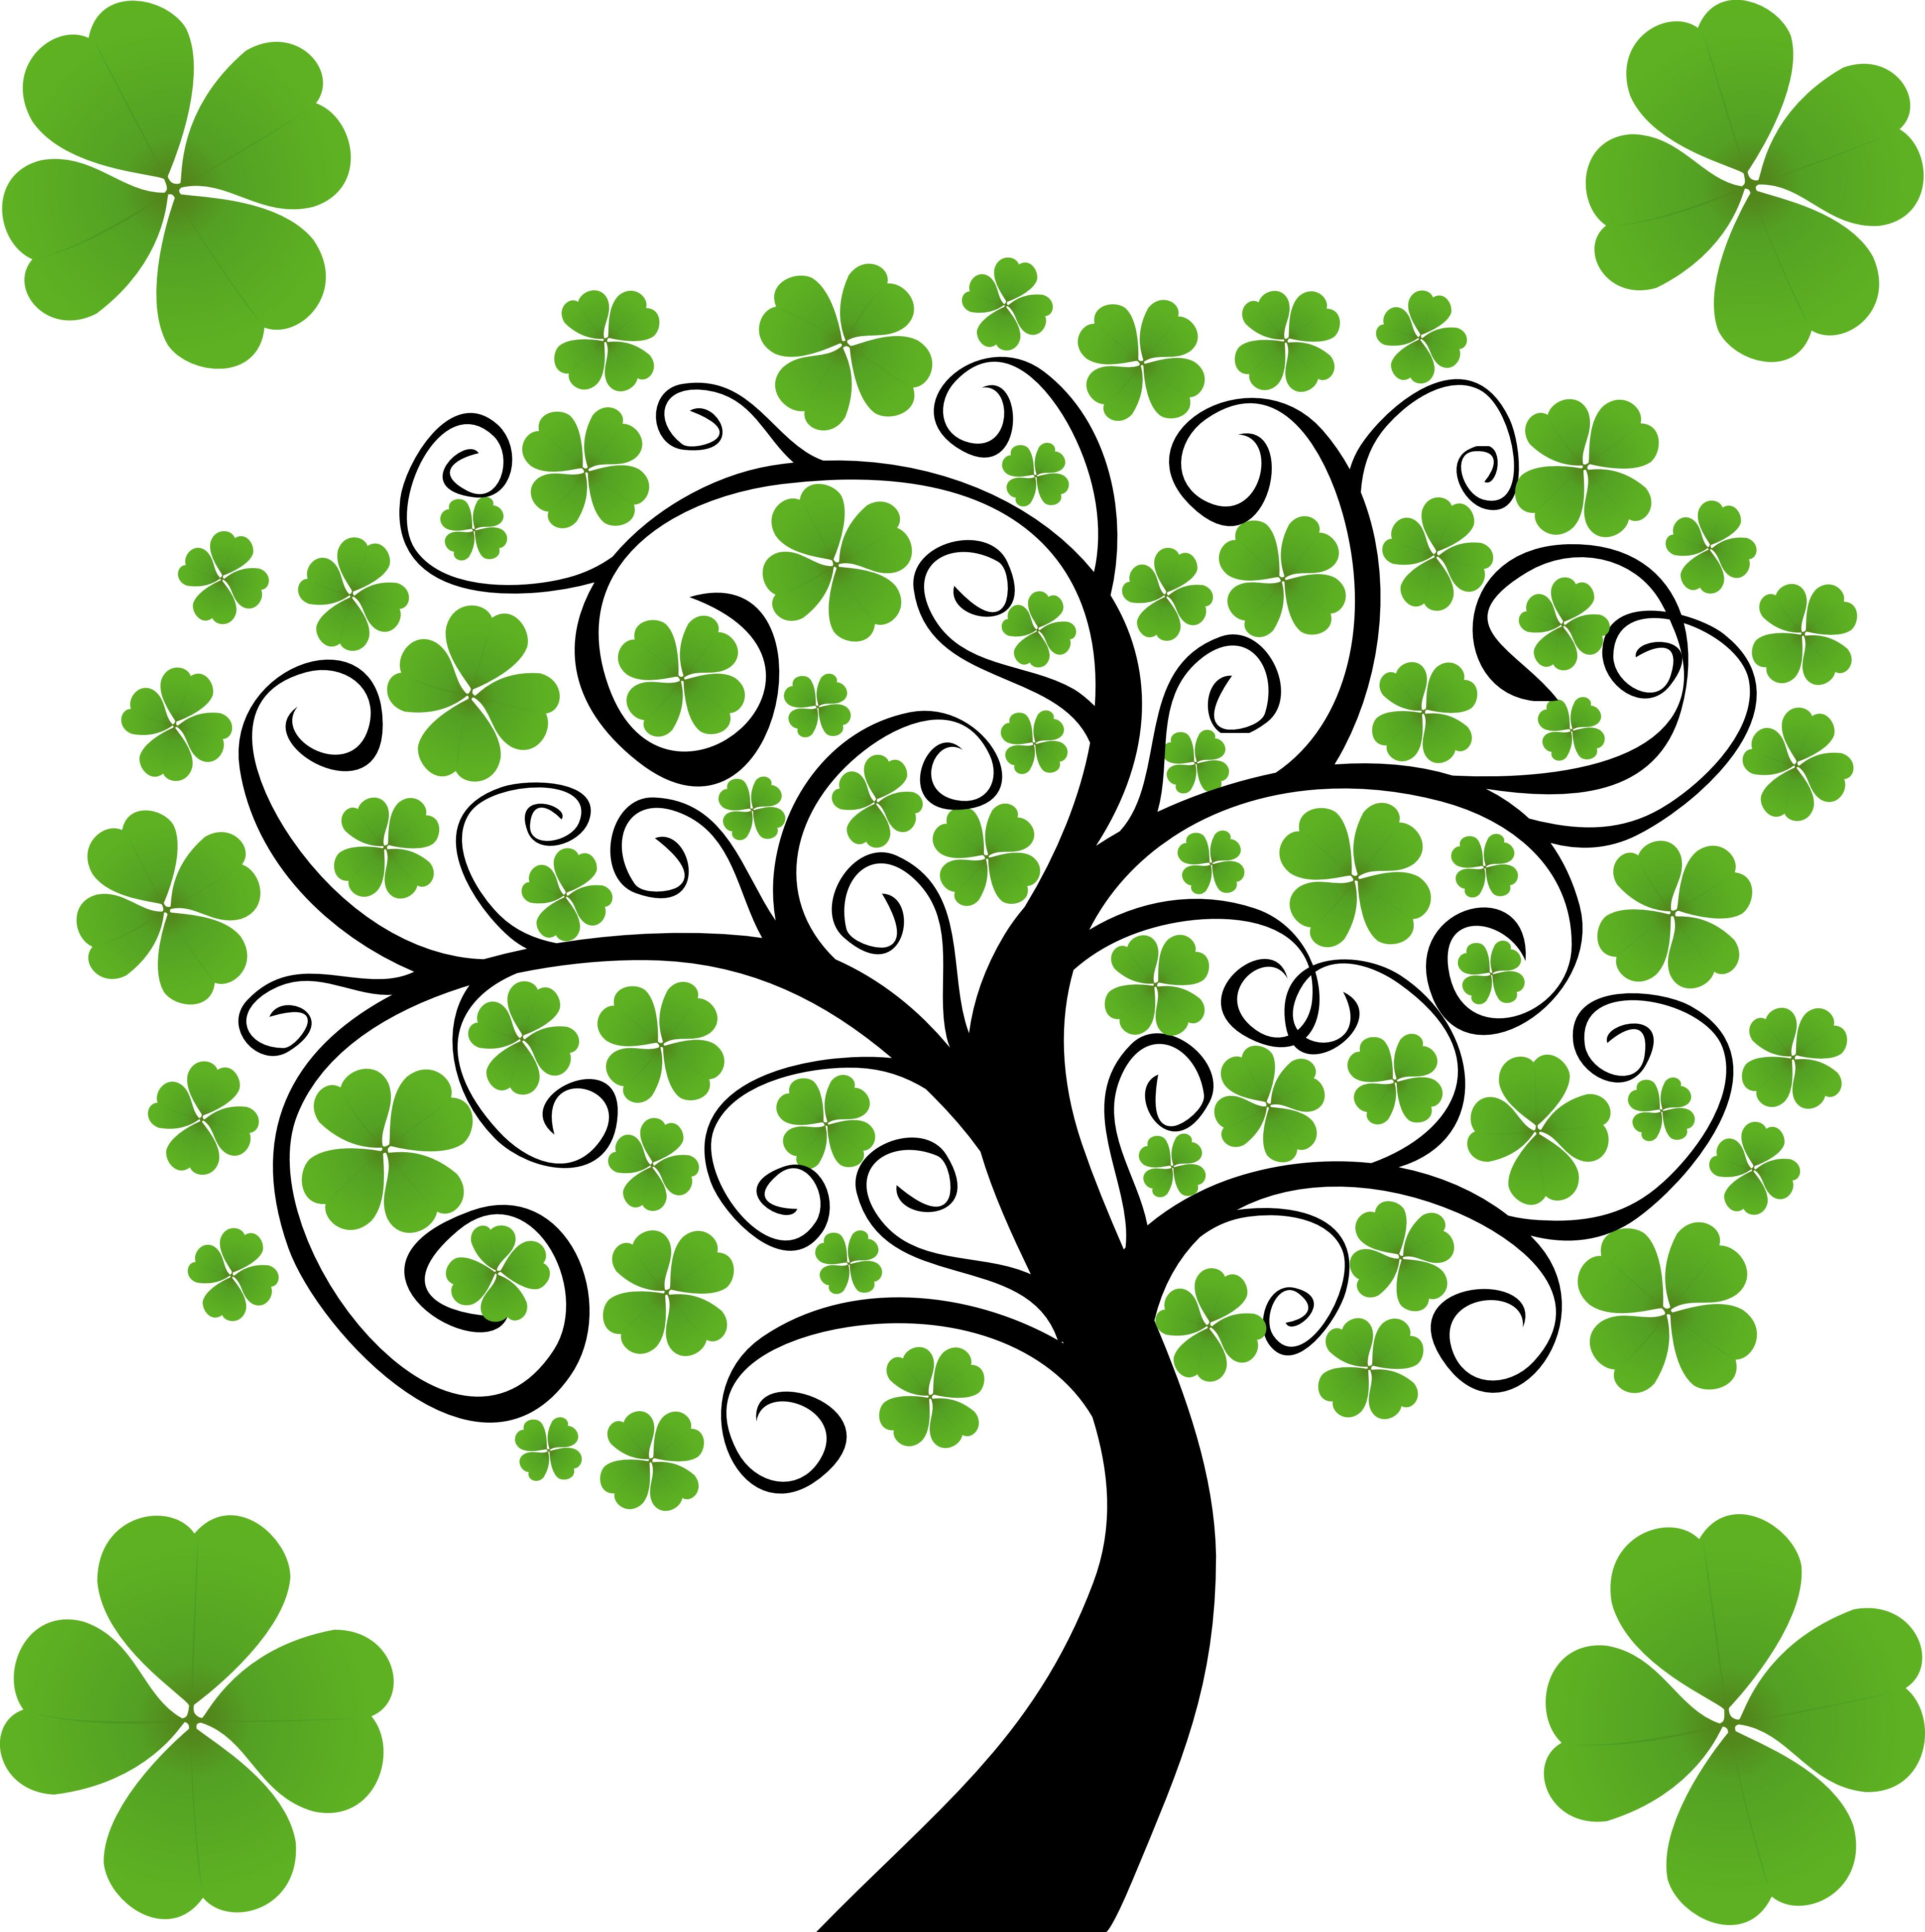 Clip Art Shamrocks St Patricks Day Clipart Shamrock Clipart Irish Tattoos